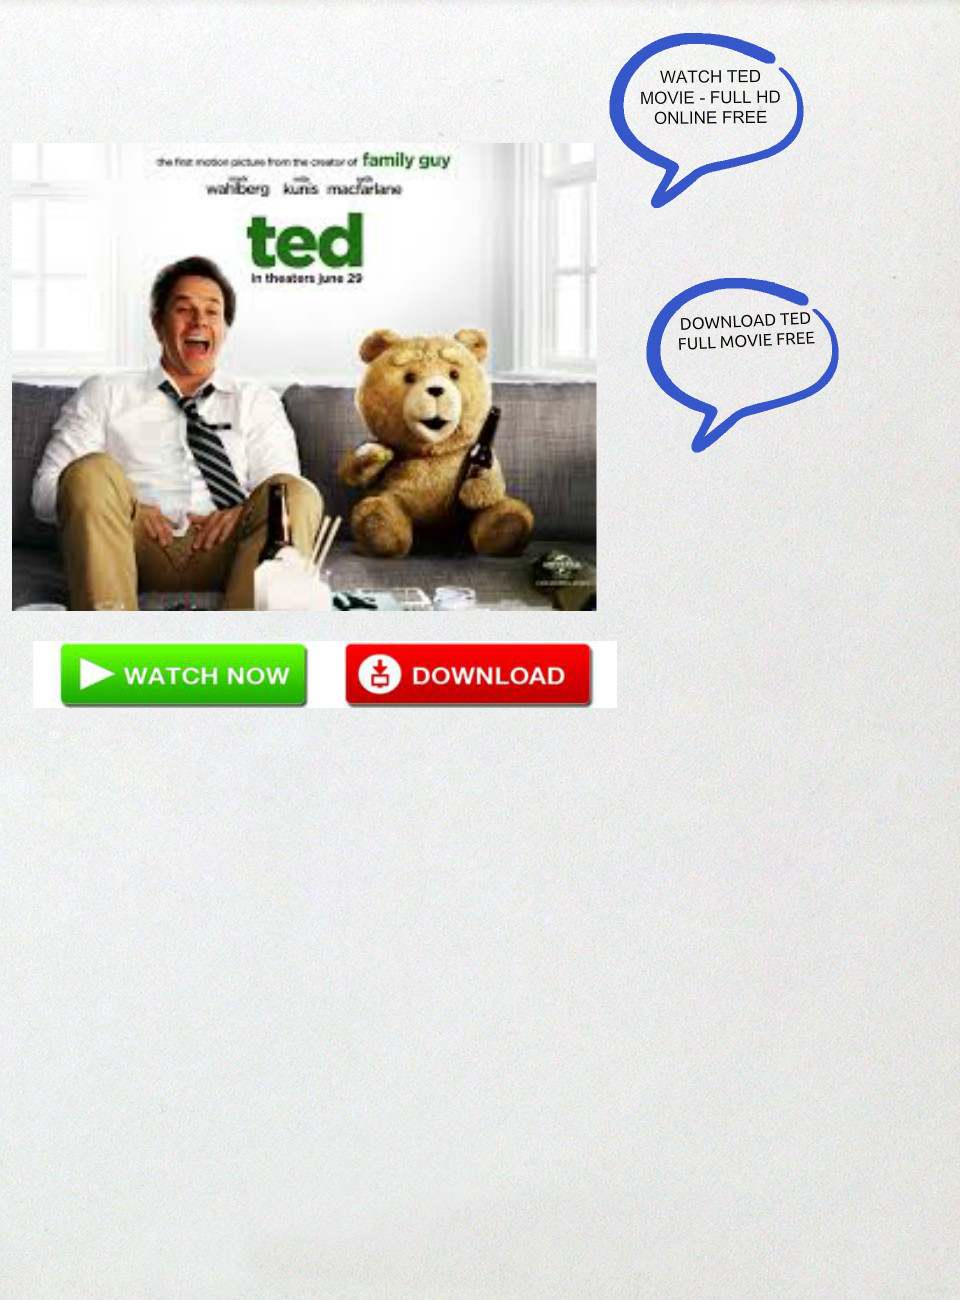 watch ted online free download ted movie: download ted movie, ted